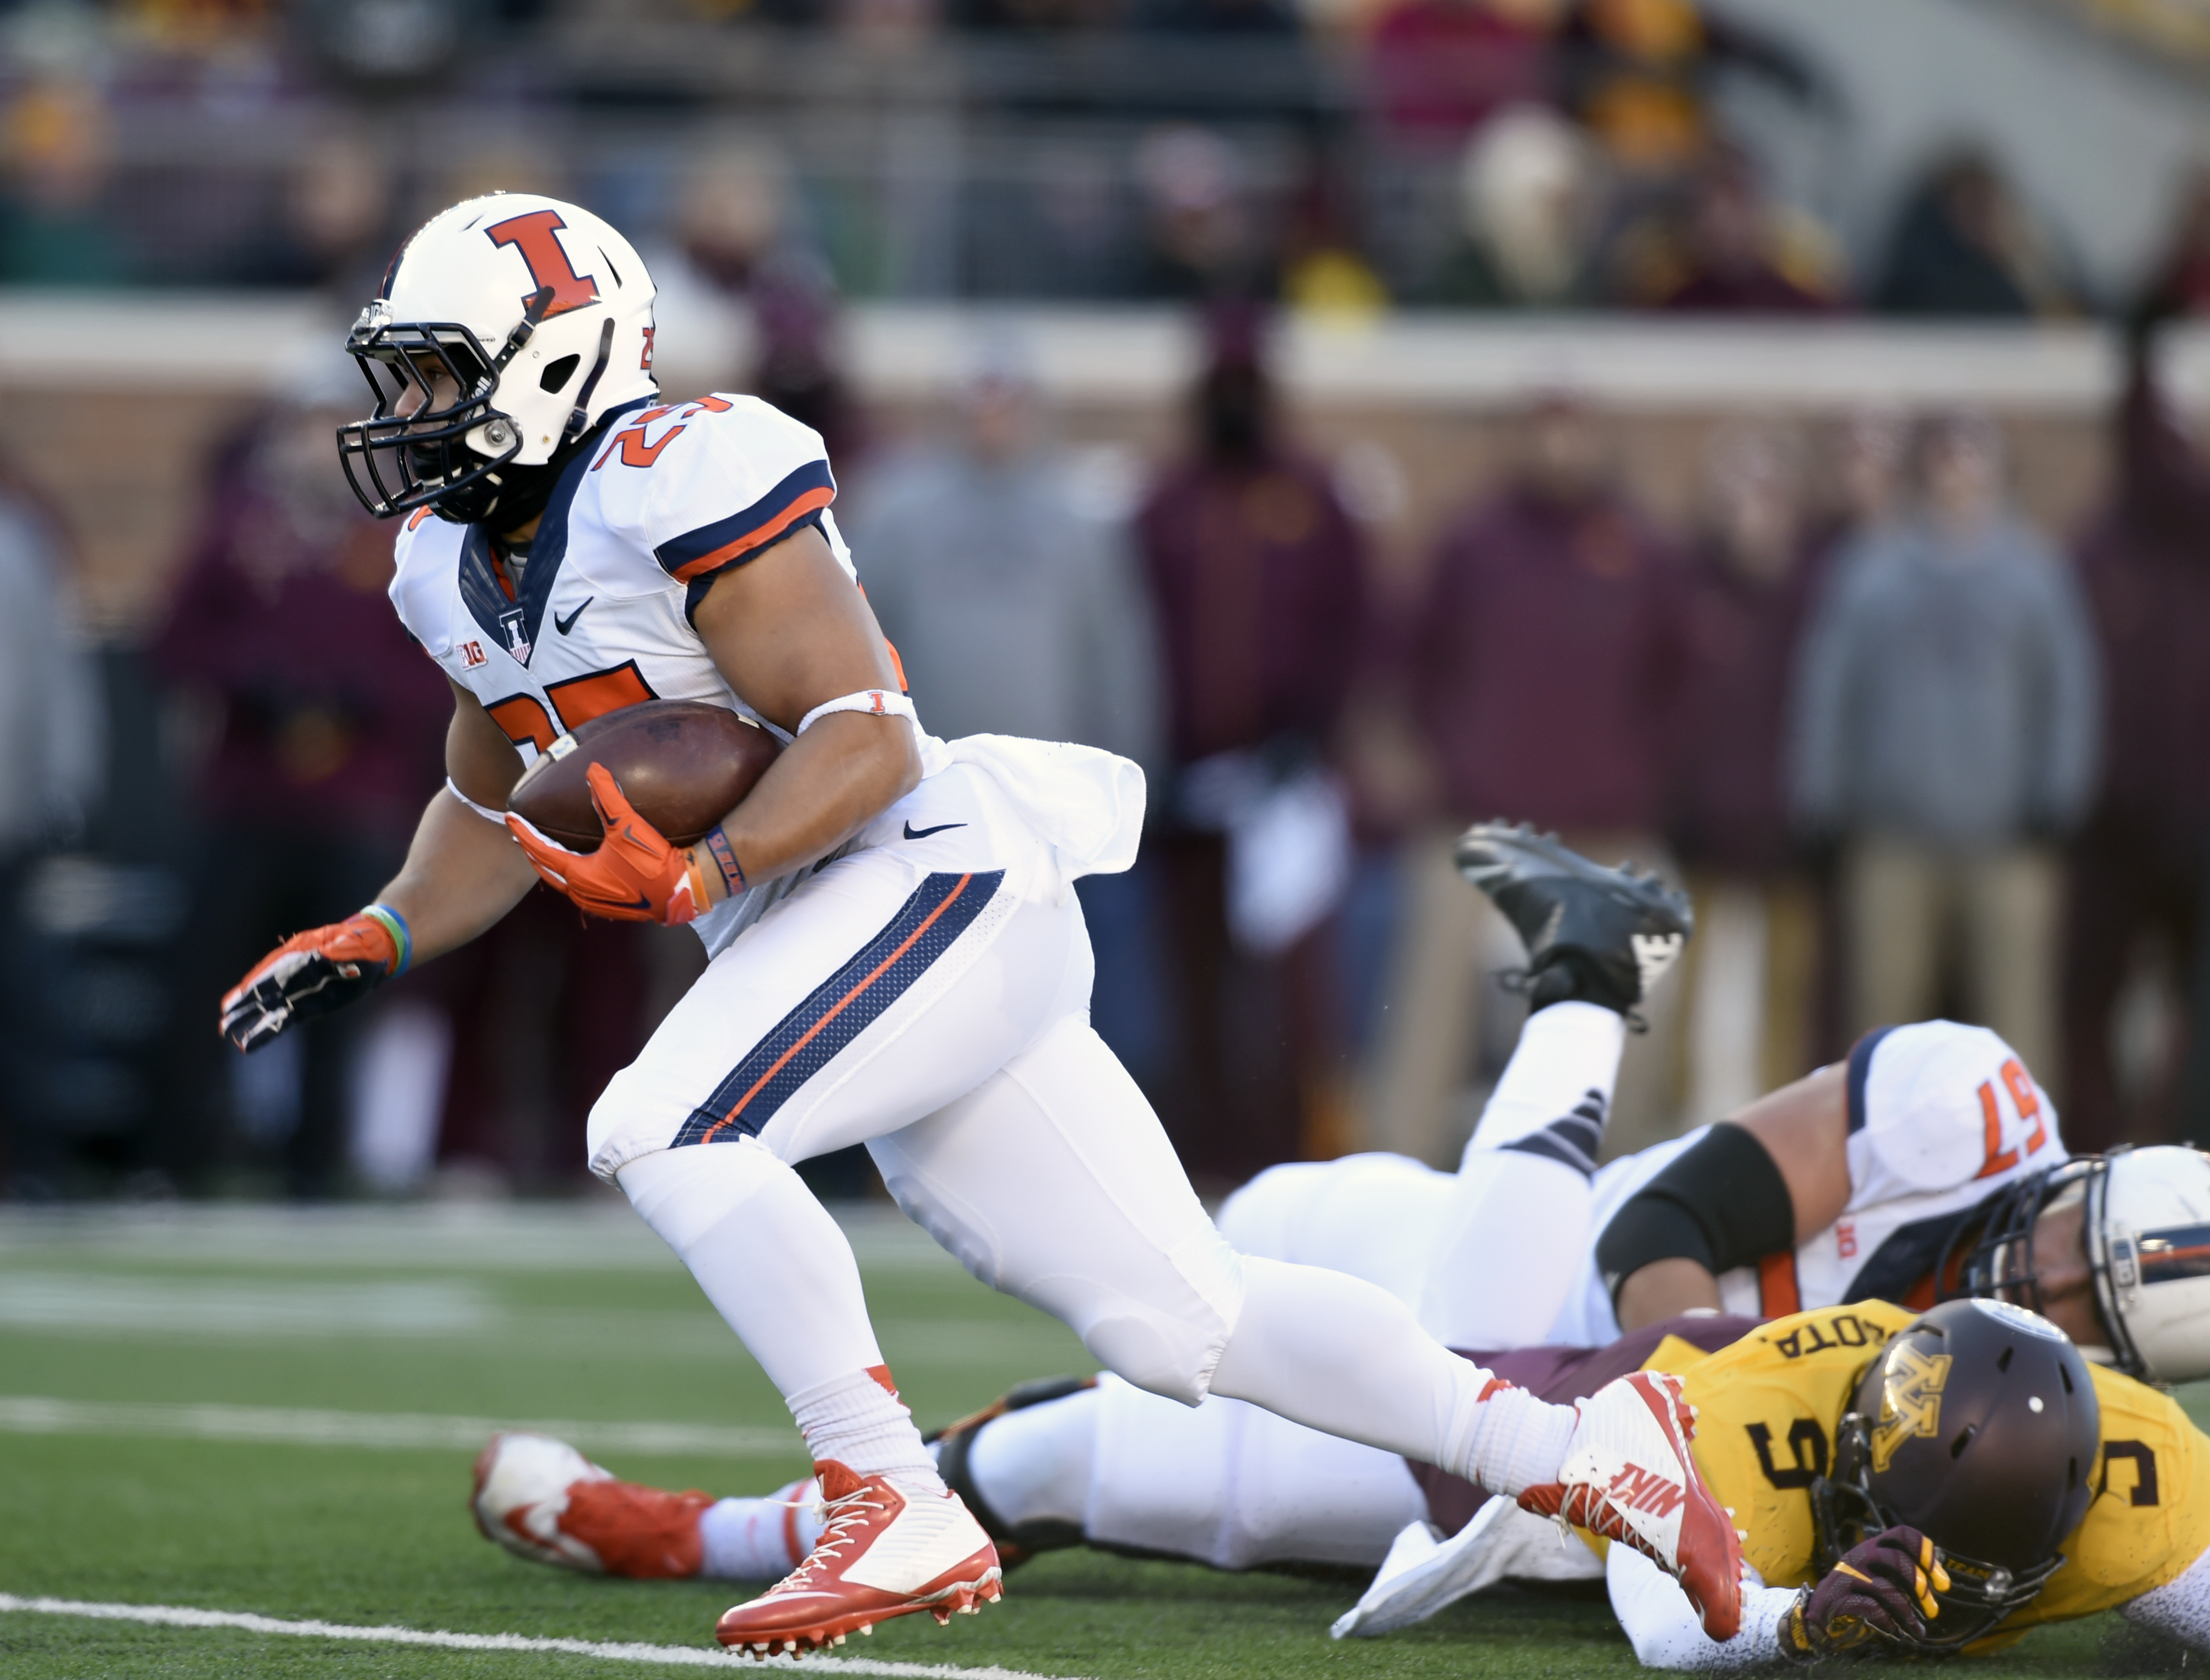 FILE - In this Nov. 21, 2015, file photo, Illinois' running back Kendrick Foster (25) carries the ball against Minnesota during an NCAA college football game in Minneapolis. As a high school player in Peoria, Ill., big games and big runs were normal for F